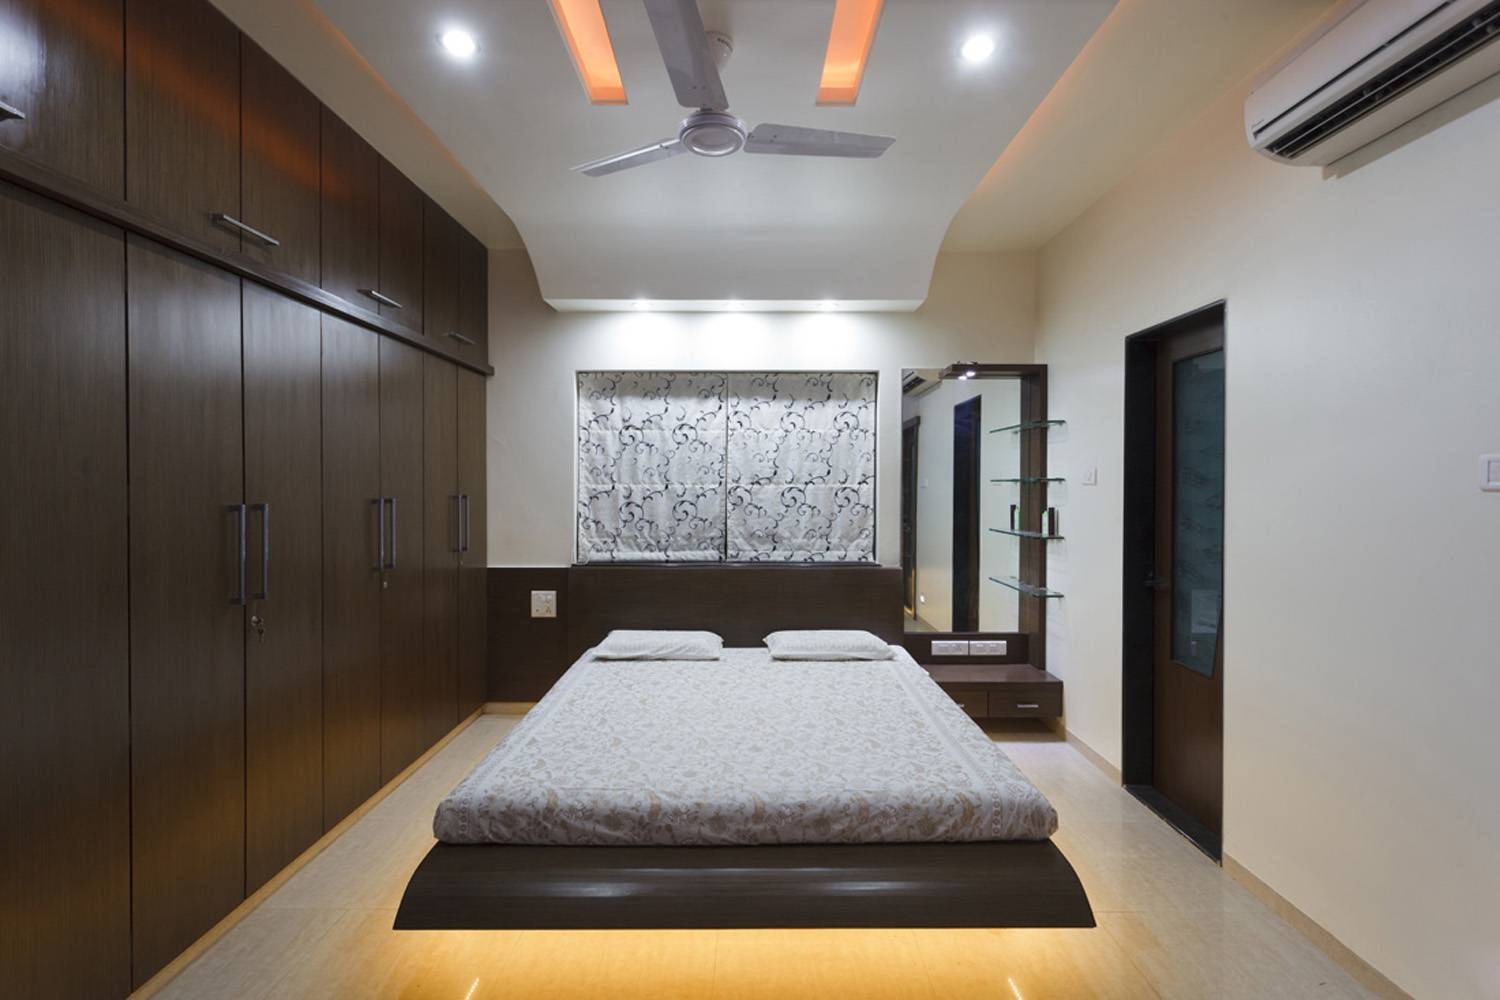 Bed room interior design portfolio leading interior for As interior design